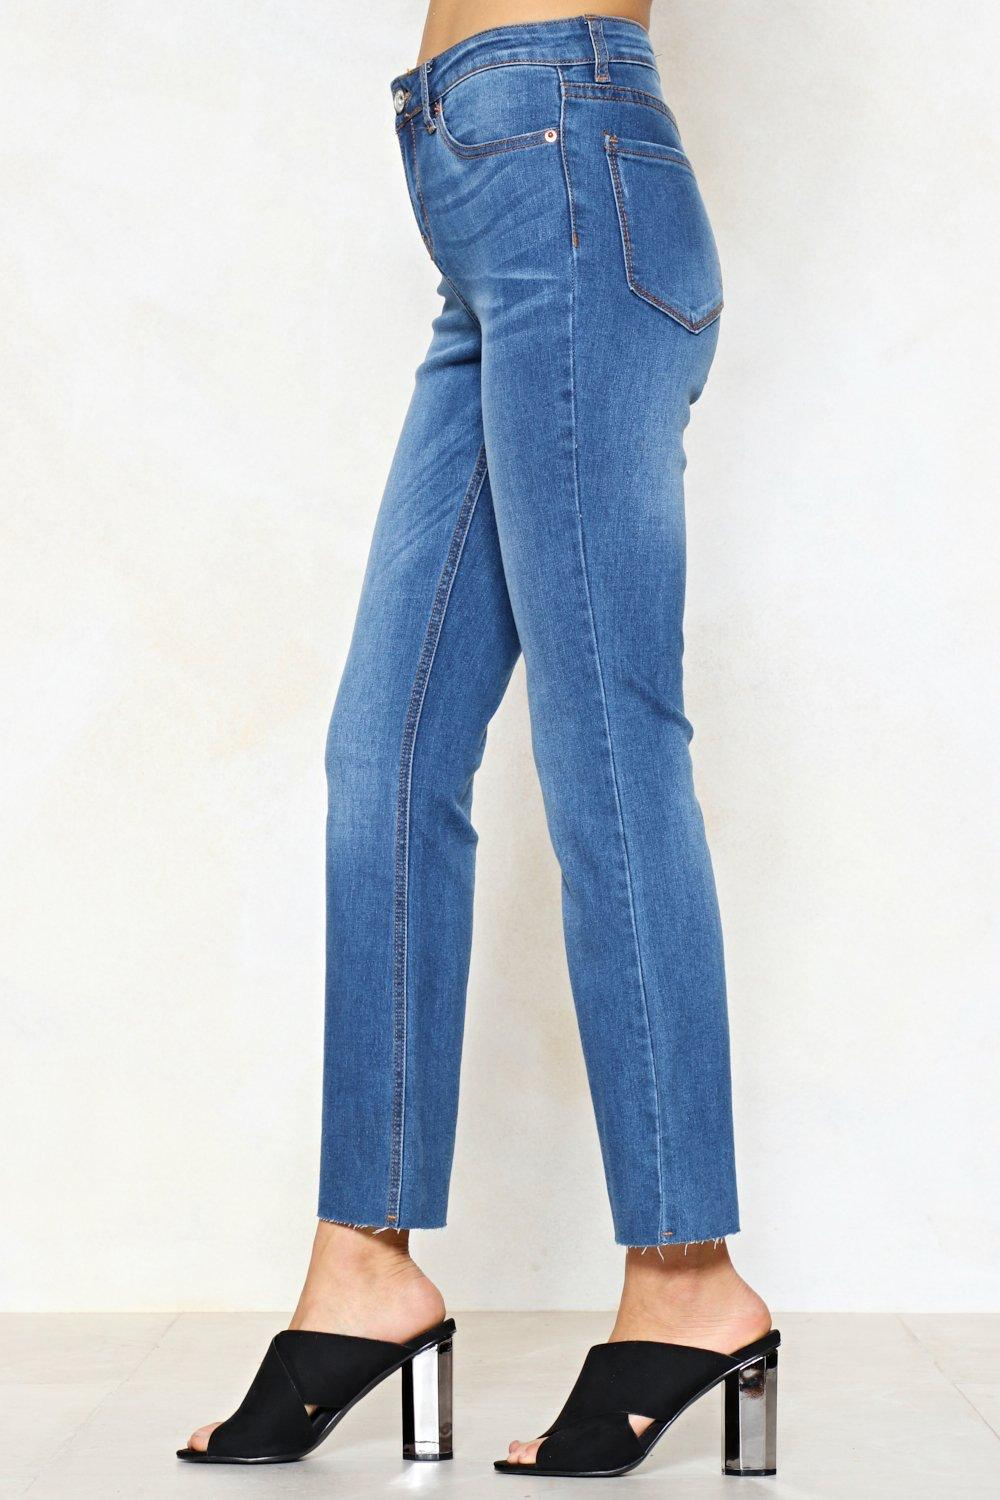 b376cc21bdedc I Flare About You Cropped Jeans. Hover to zoom